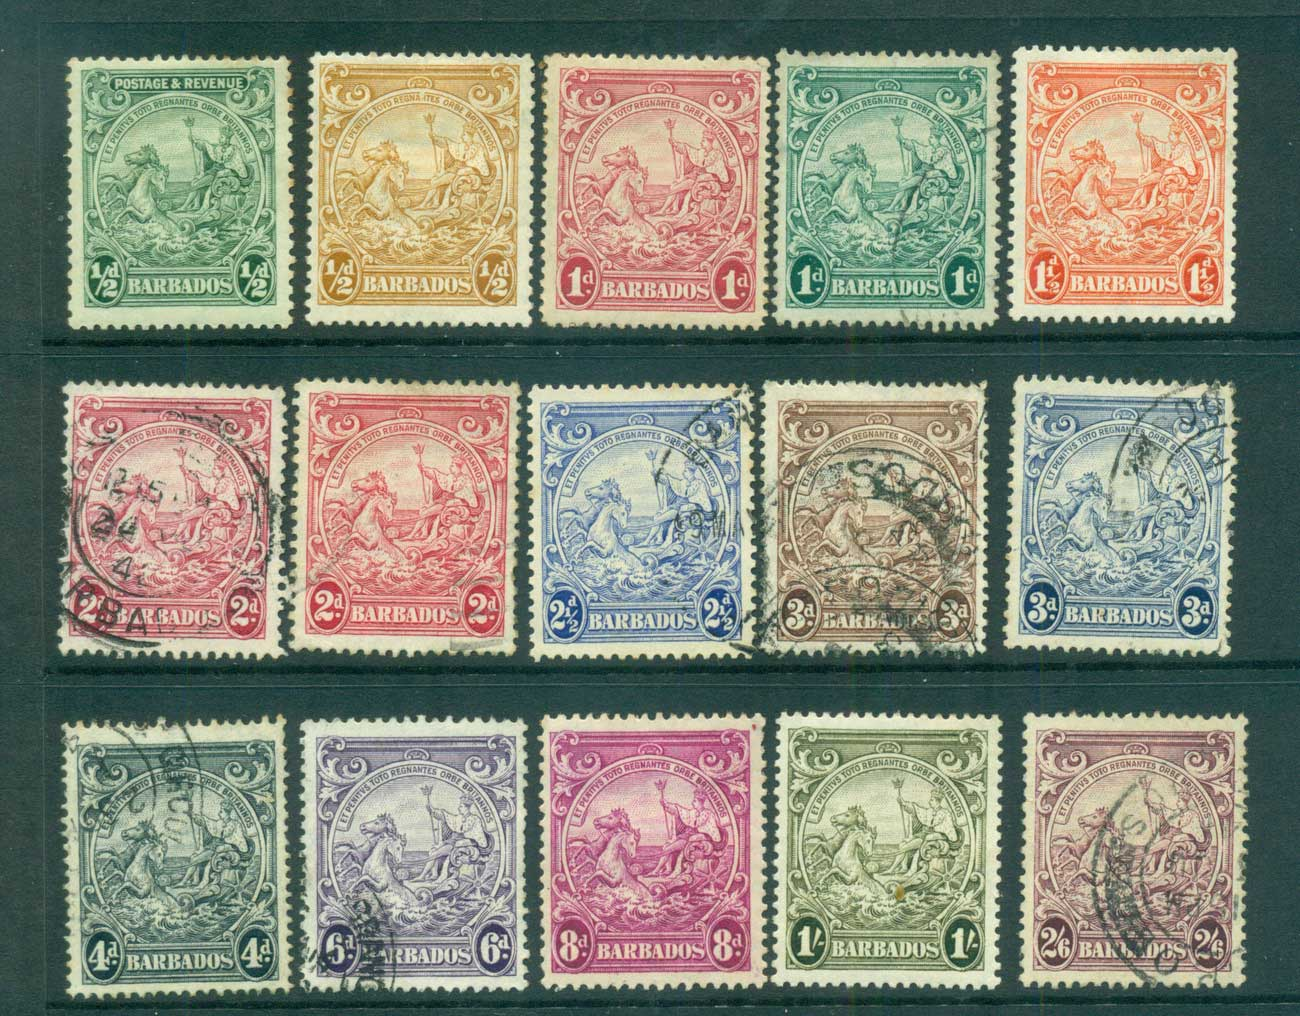 Barbados 1938-47 KGVI Seahorses, not perf checked, priced as cheapest to 2/6d MH/FU lot68171